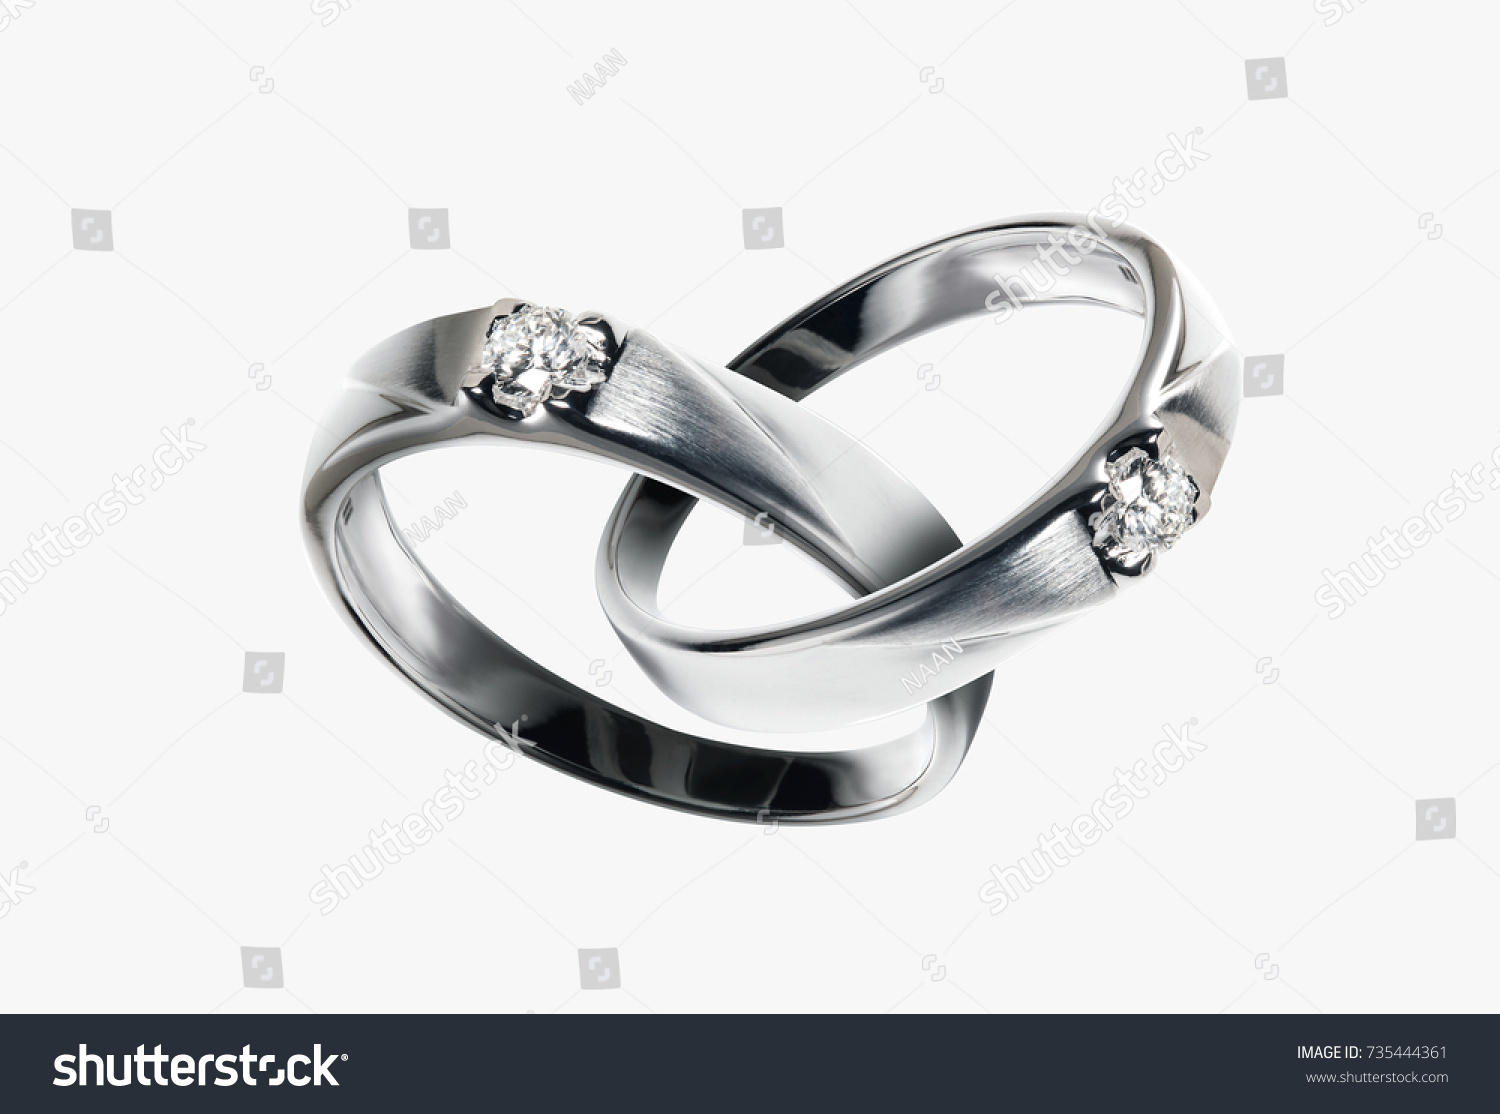 platinum platinium in for jewelry rings shop wedding p online twist ring handcrafted